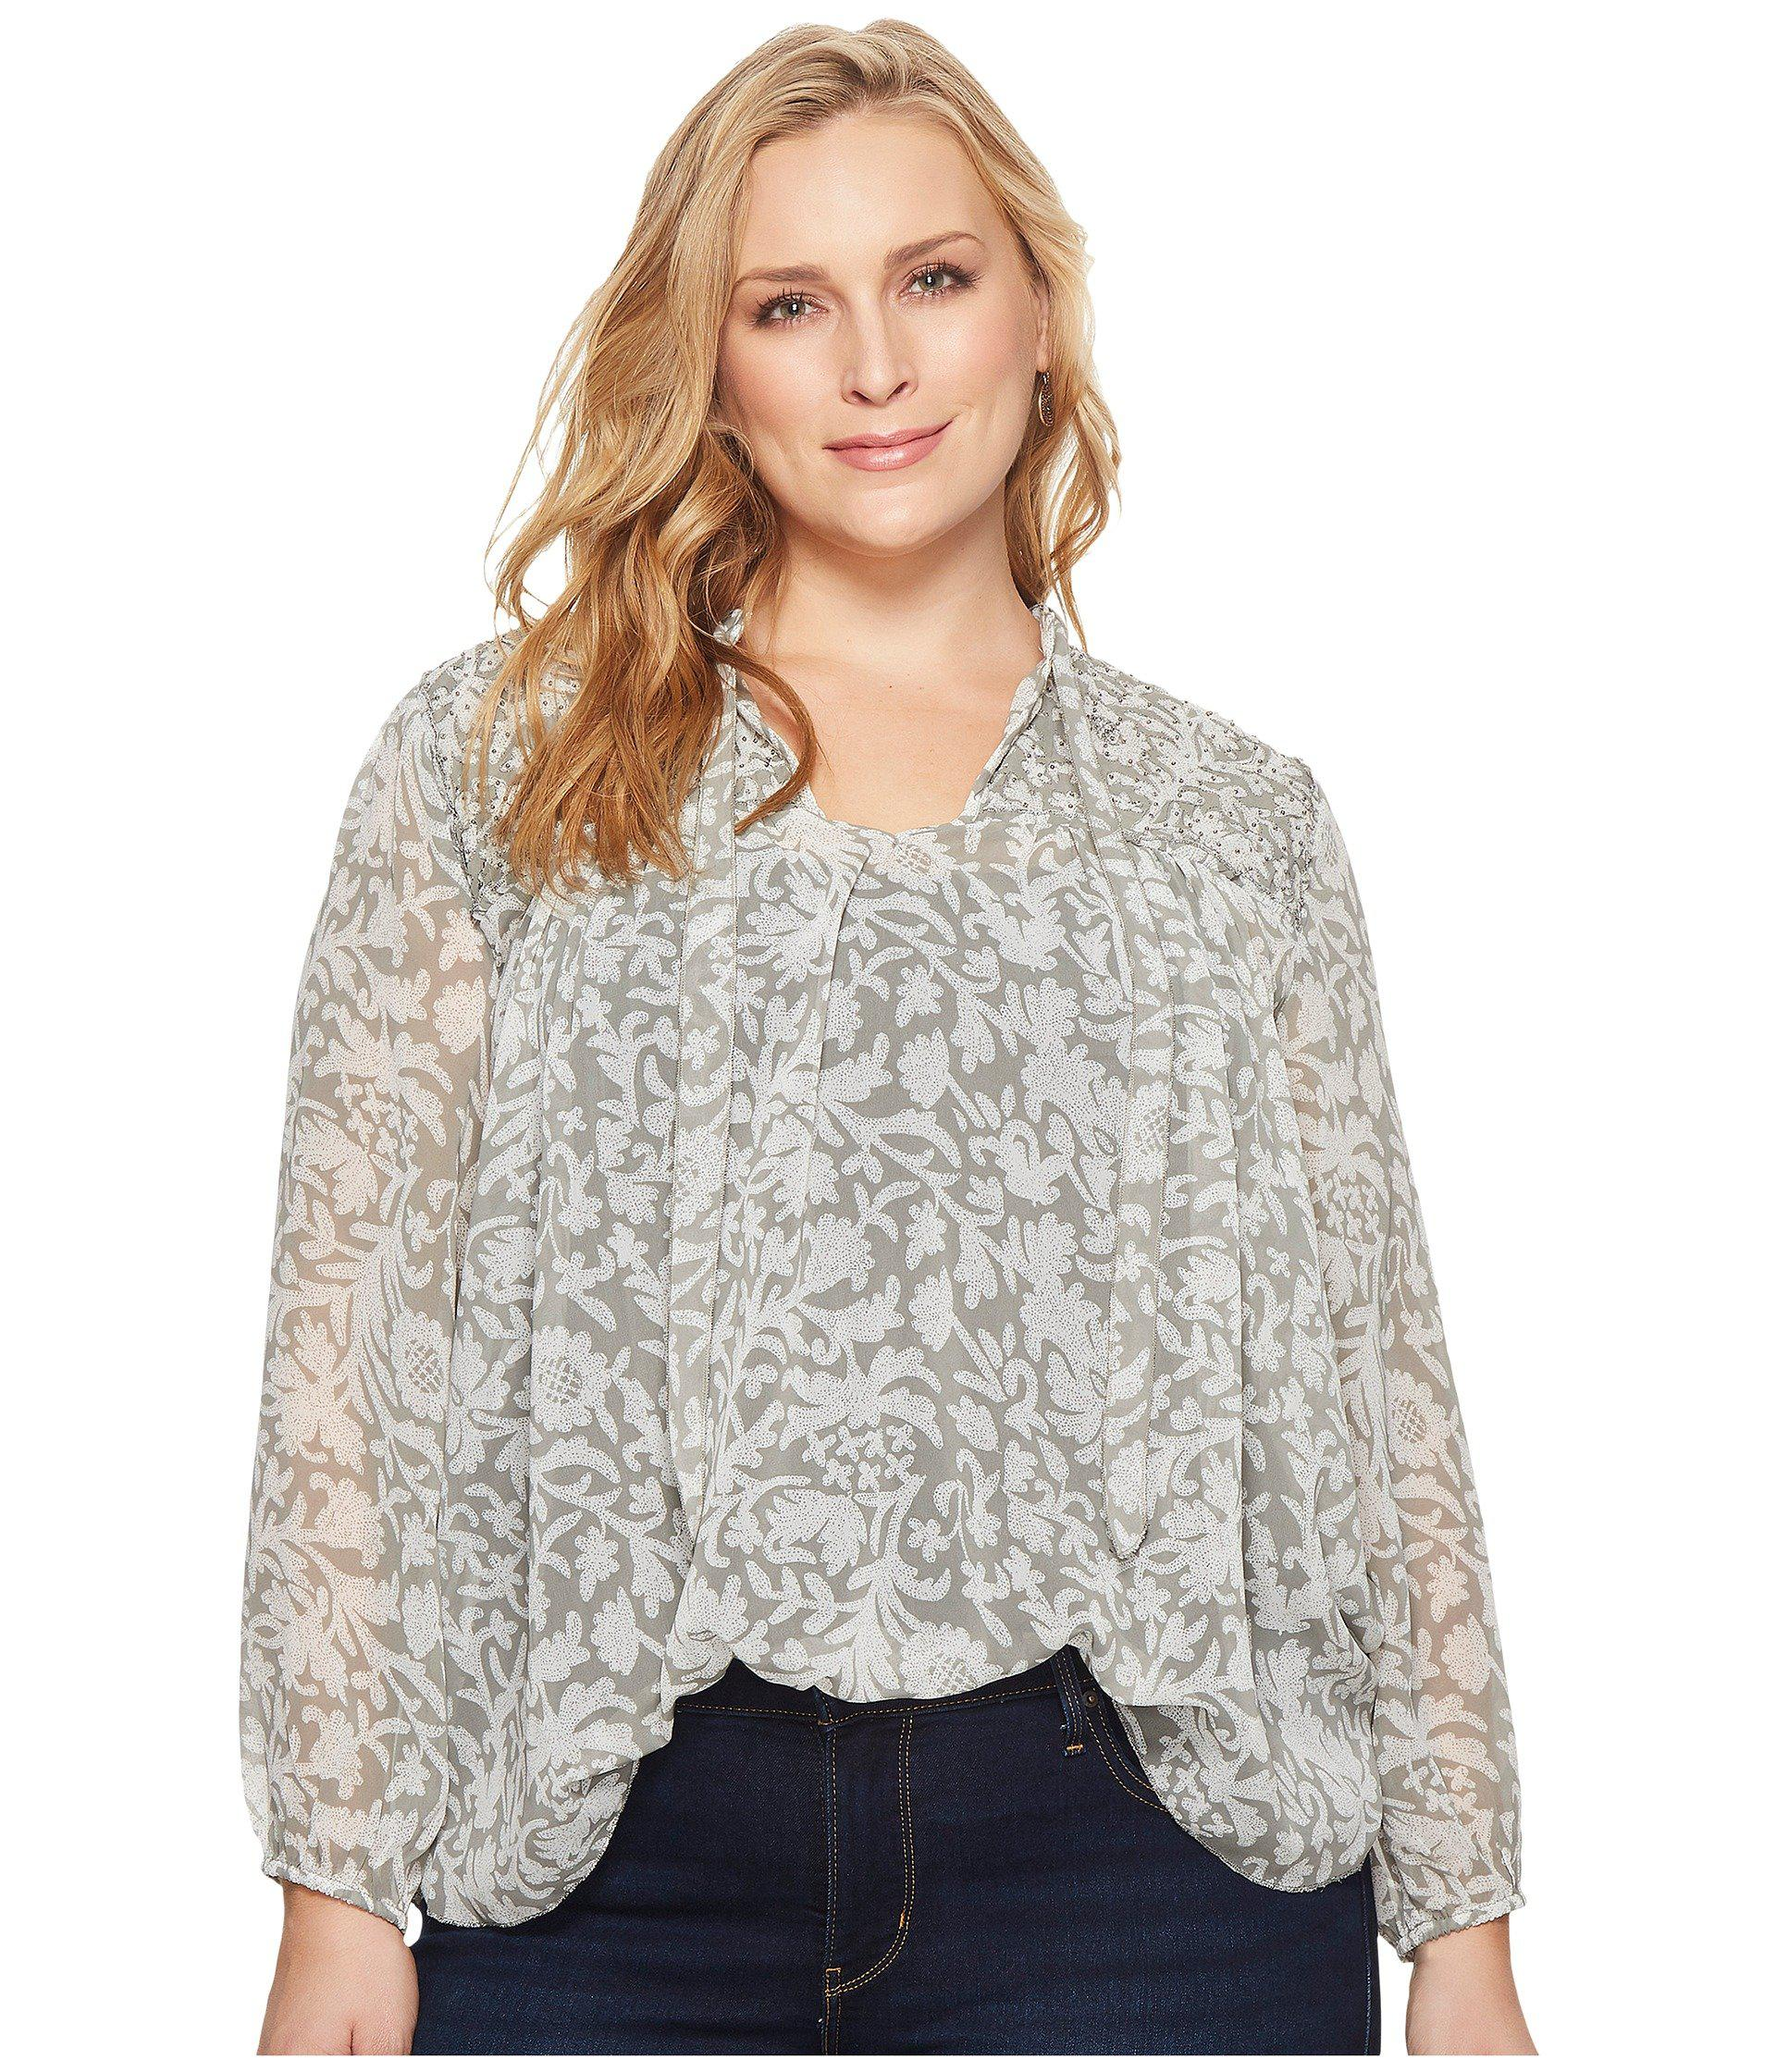 37f587debf4 Lyst - Lucky Brand Plus Size Beaded Floral Peasant Top in Gray ...